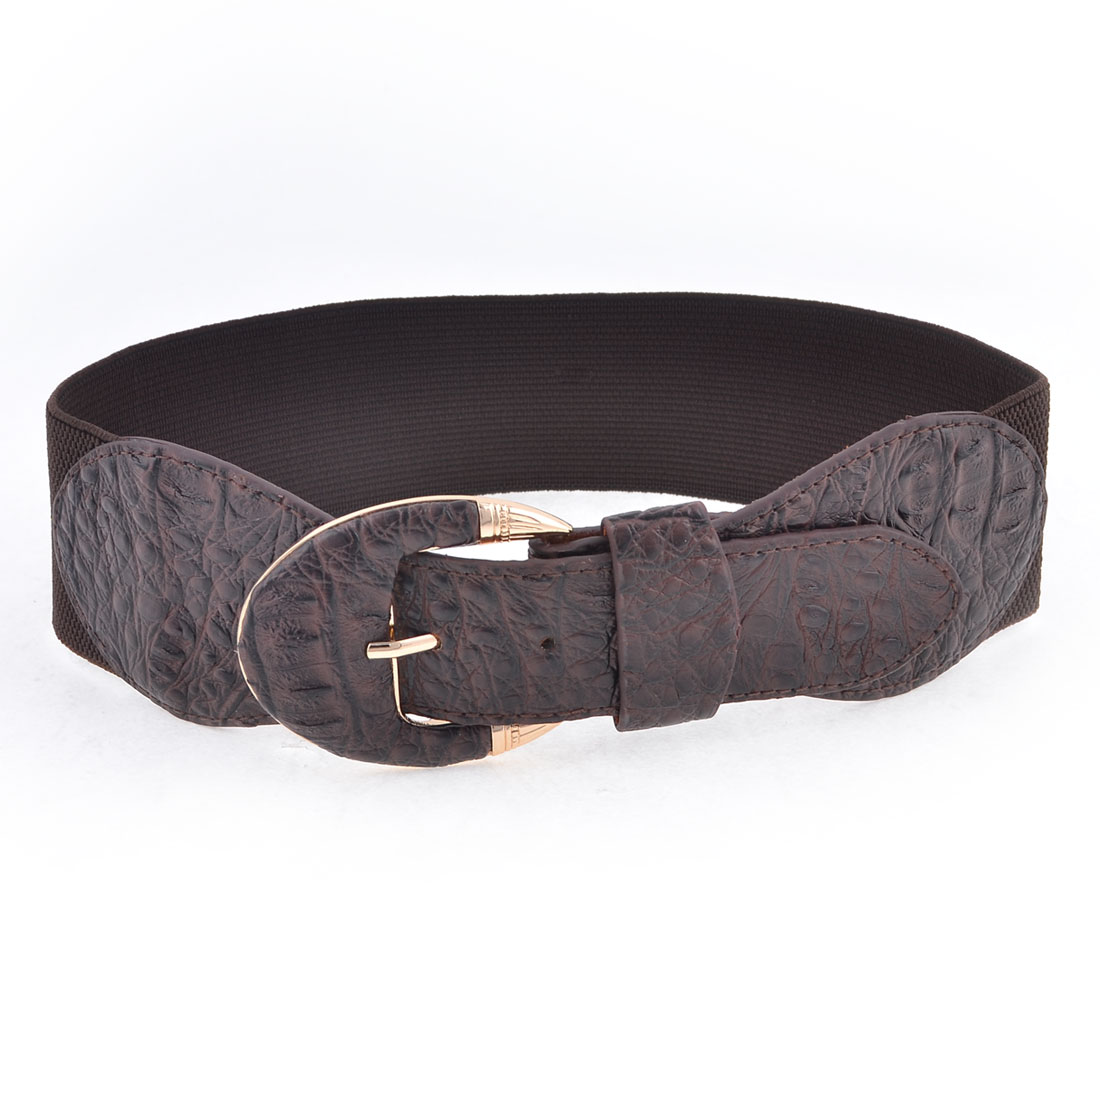 Lady Single Pin Buckle Faux Leather 6cm Wide Elastic Waist Cinch Belt Dark Brown